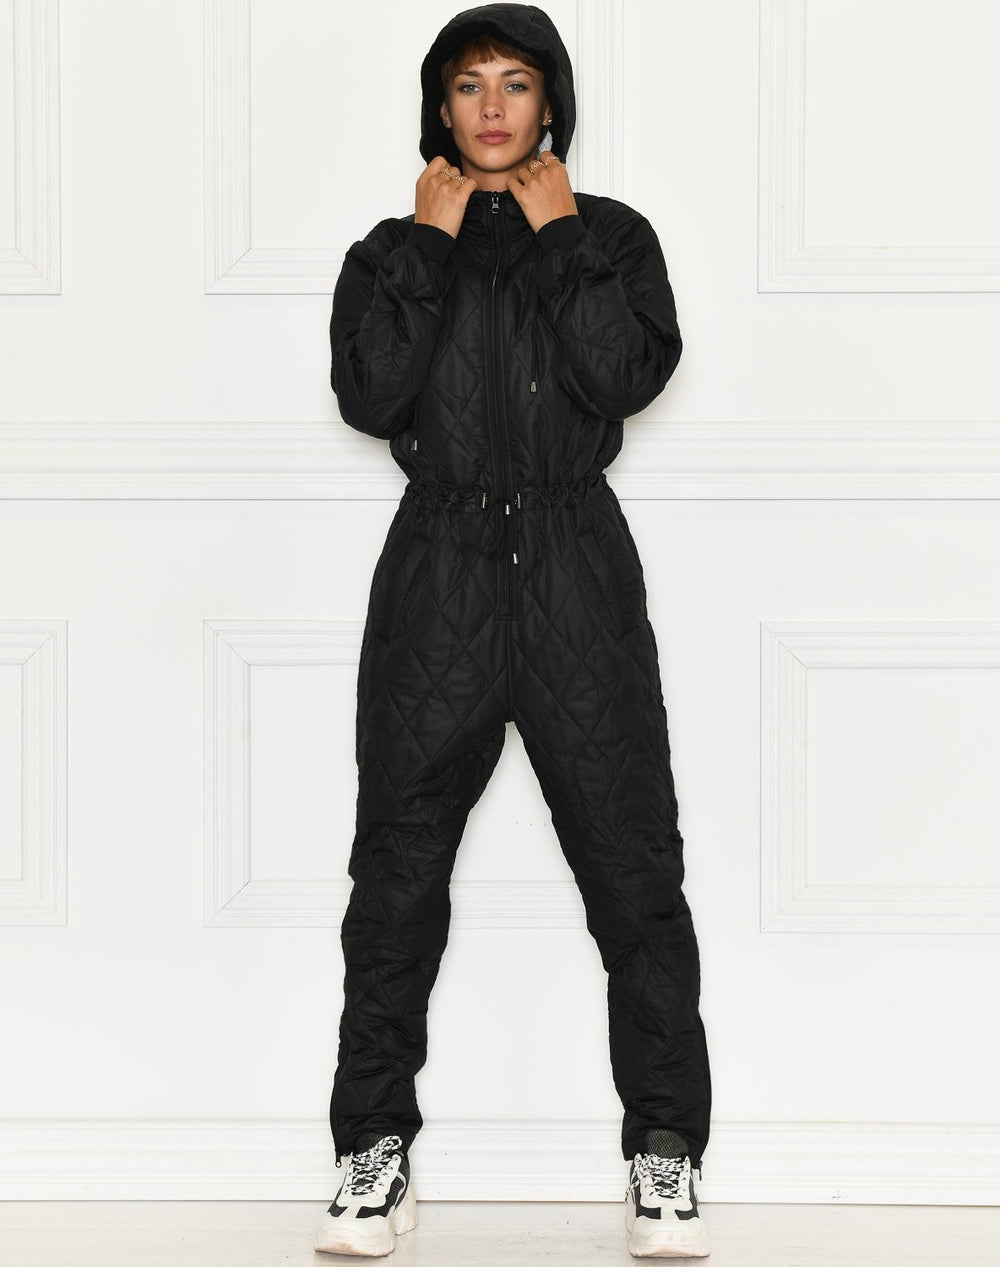 Kaffe KALina jumpsuit black deep - Online-Mode